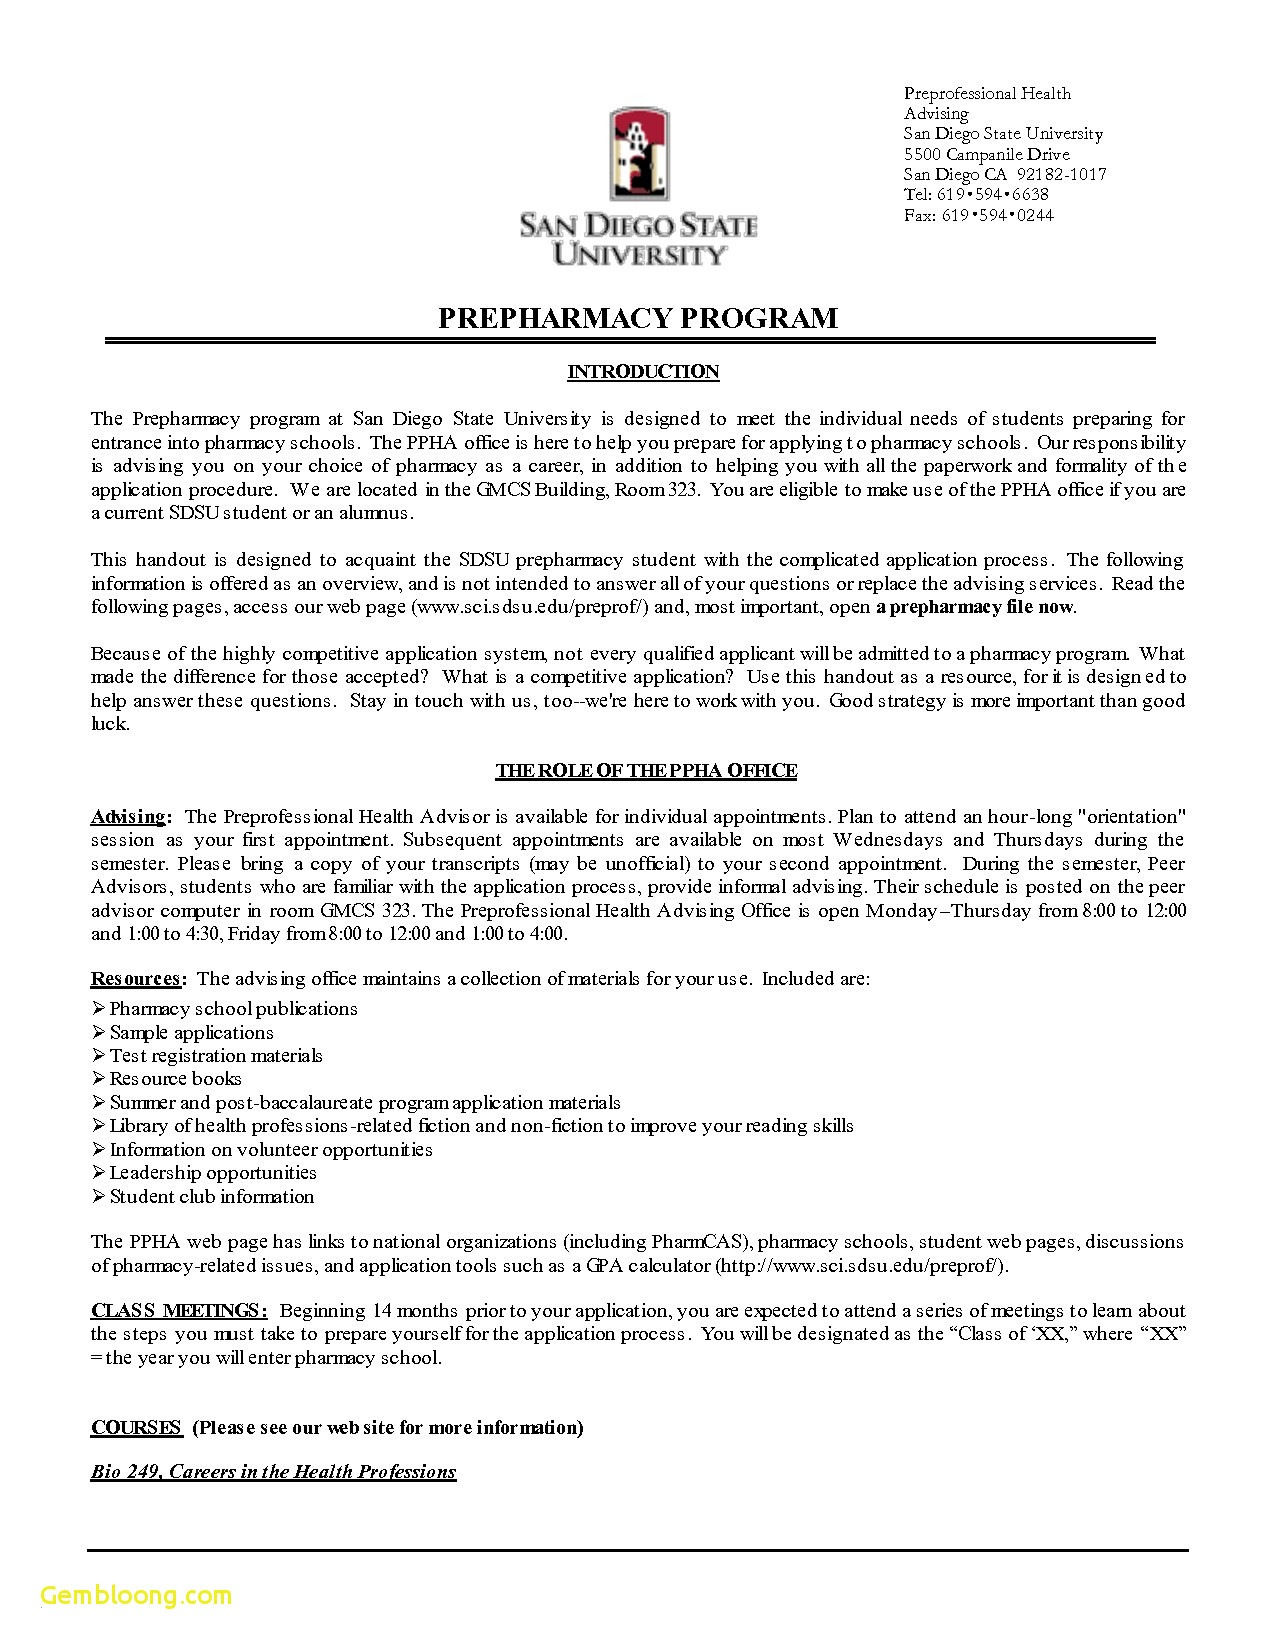 pharmacist resume template word example-Pharmacist Resume Templates Inspirational Pharmacist Resume Example Beautiful 25 Pharmacy Resume Templates 10-a